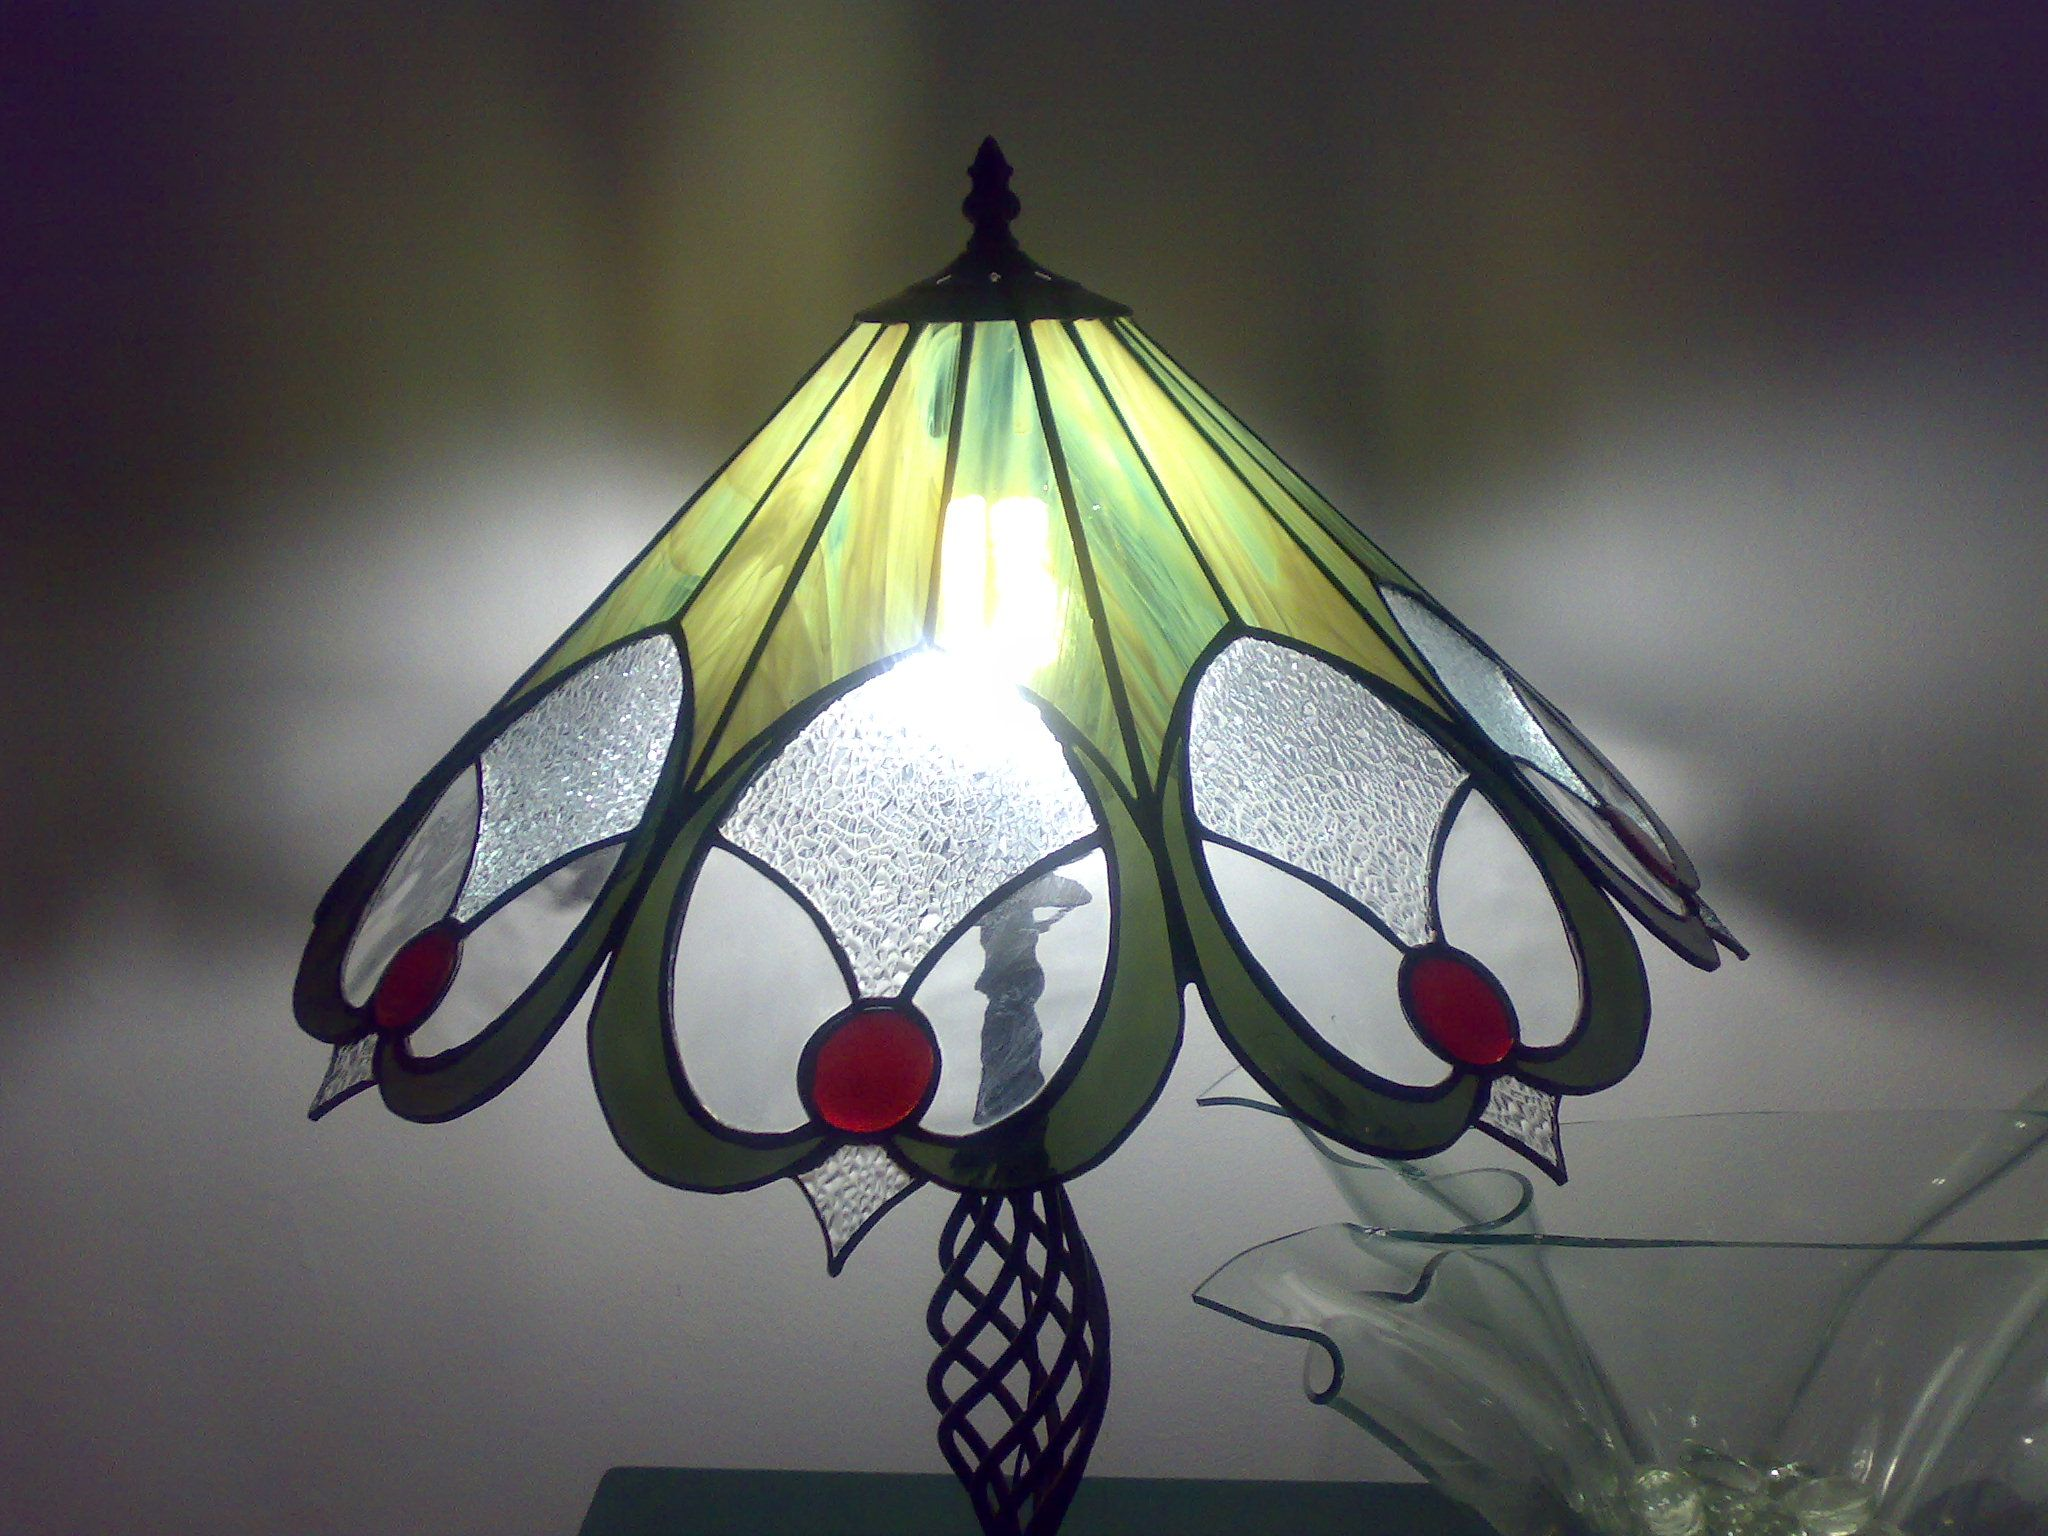 Shara S Lamp Stained Glass Candles Stained Glass Light Window